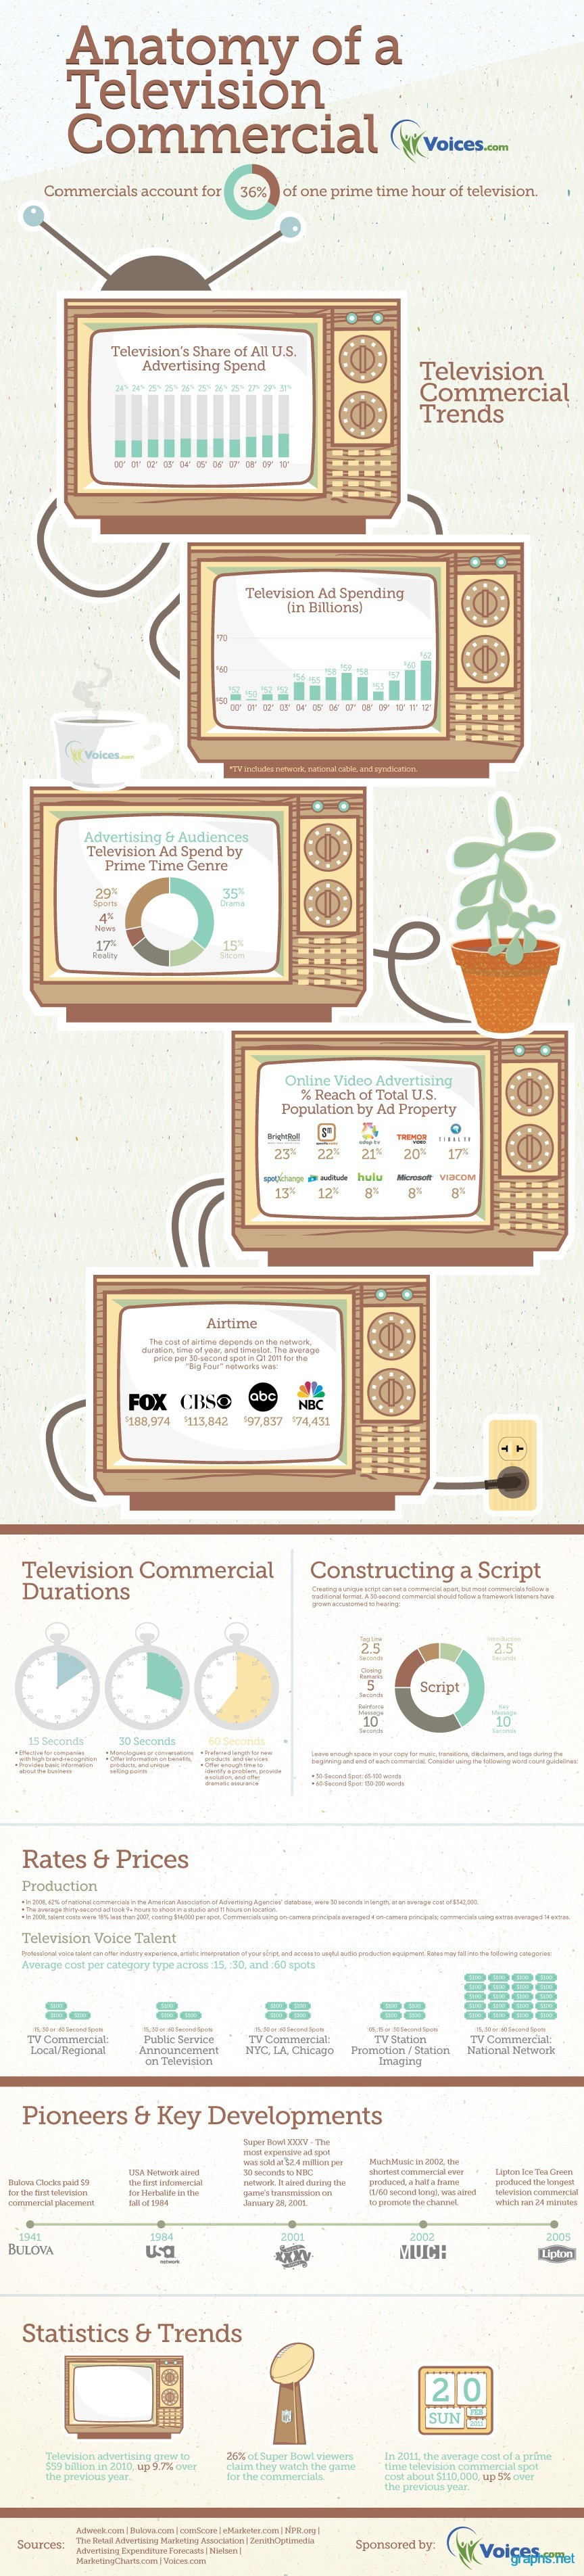 Facts About Television Commercials